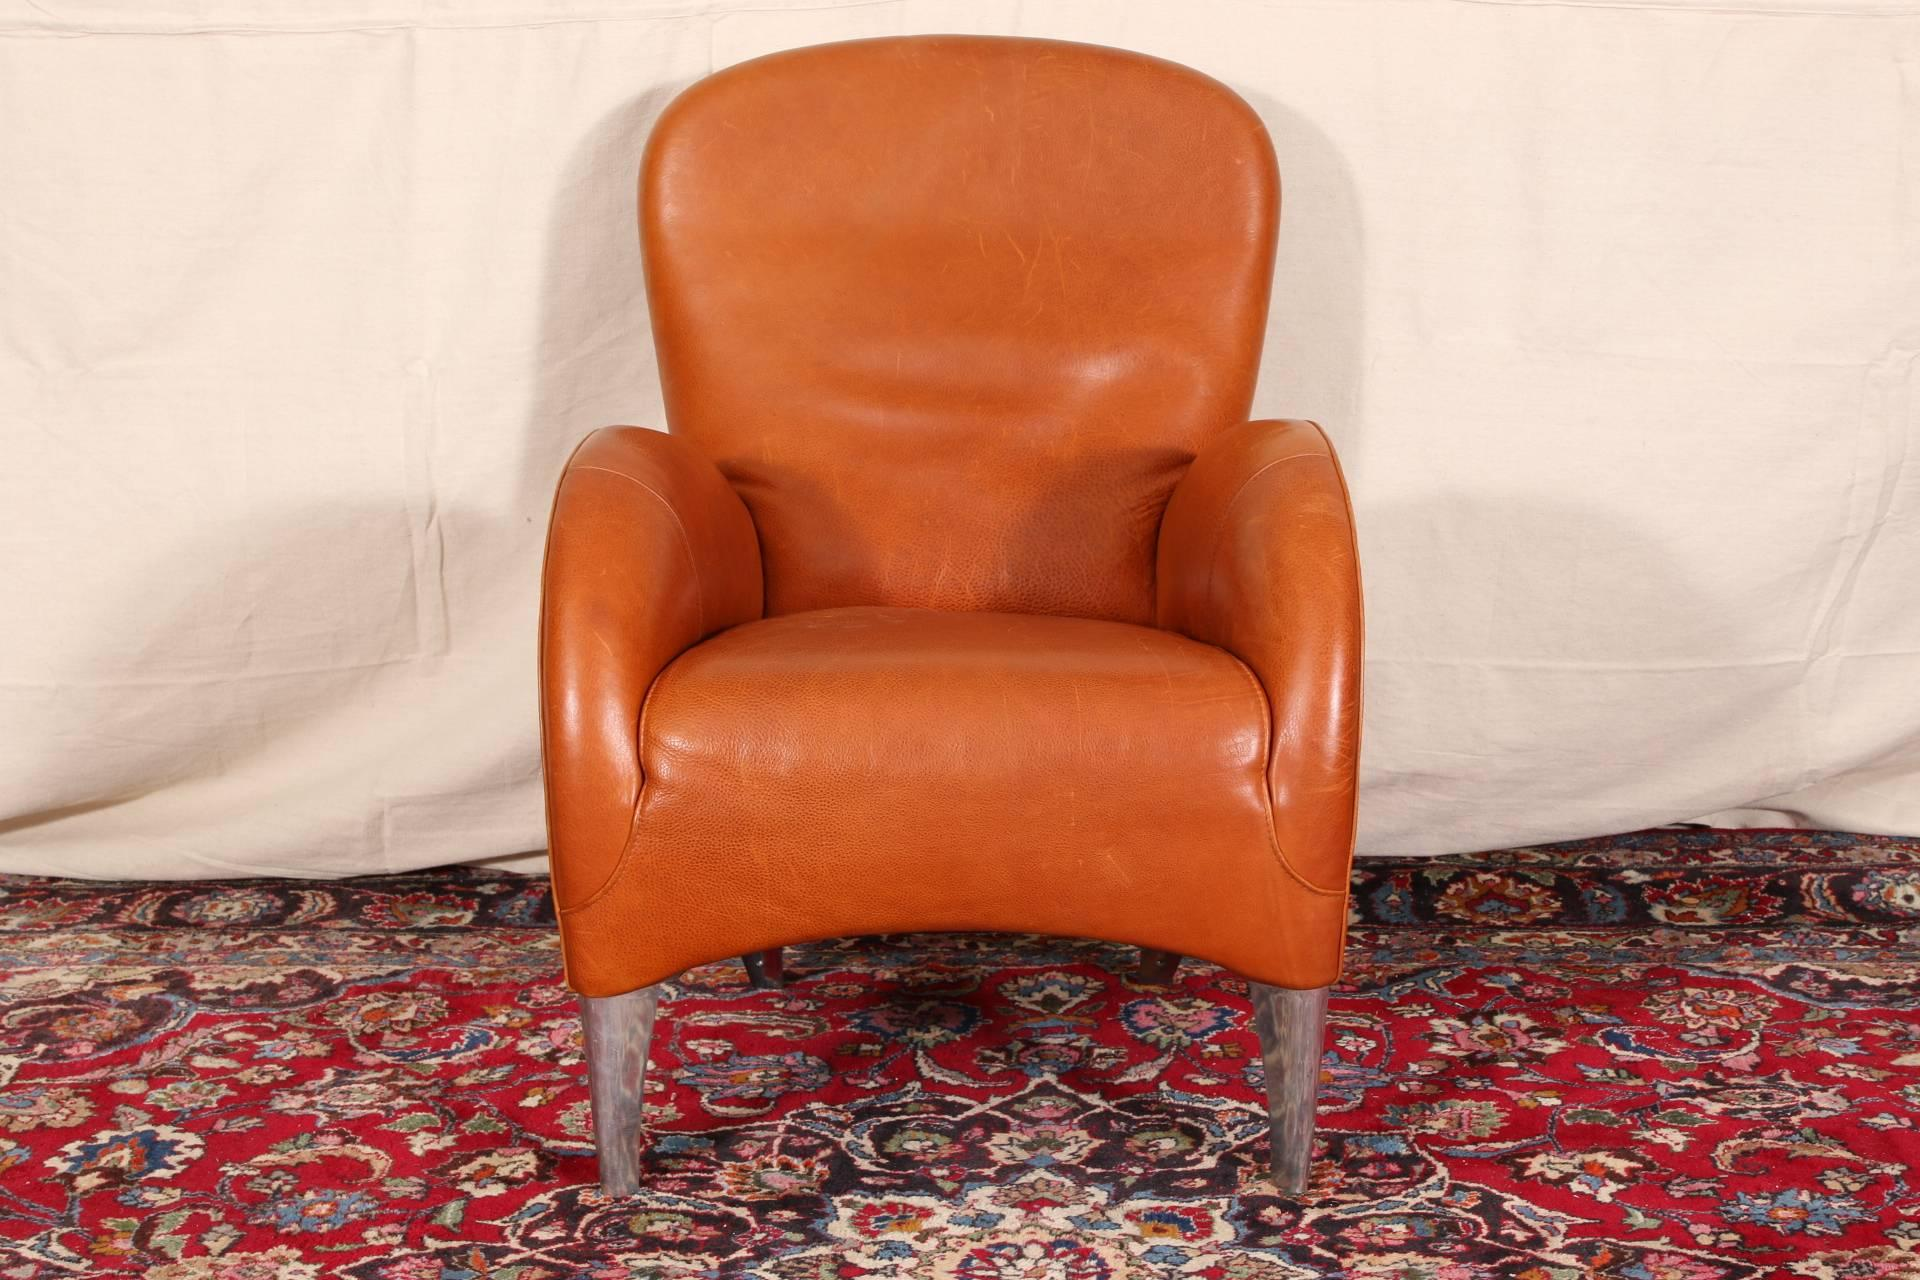 Vintage Molinari Tobacco Leather Armchair, Arched Arms And Curved Lower  Frames Raised On Chrome Shaped